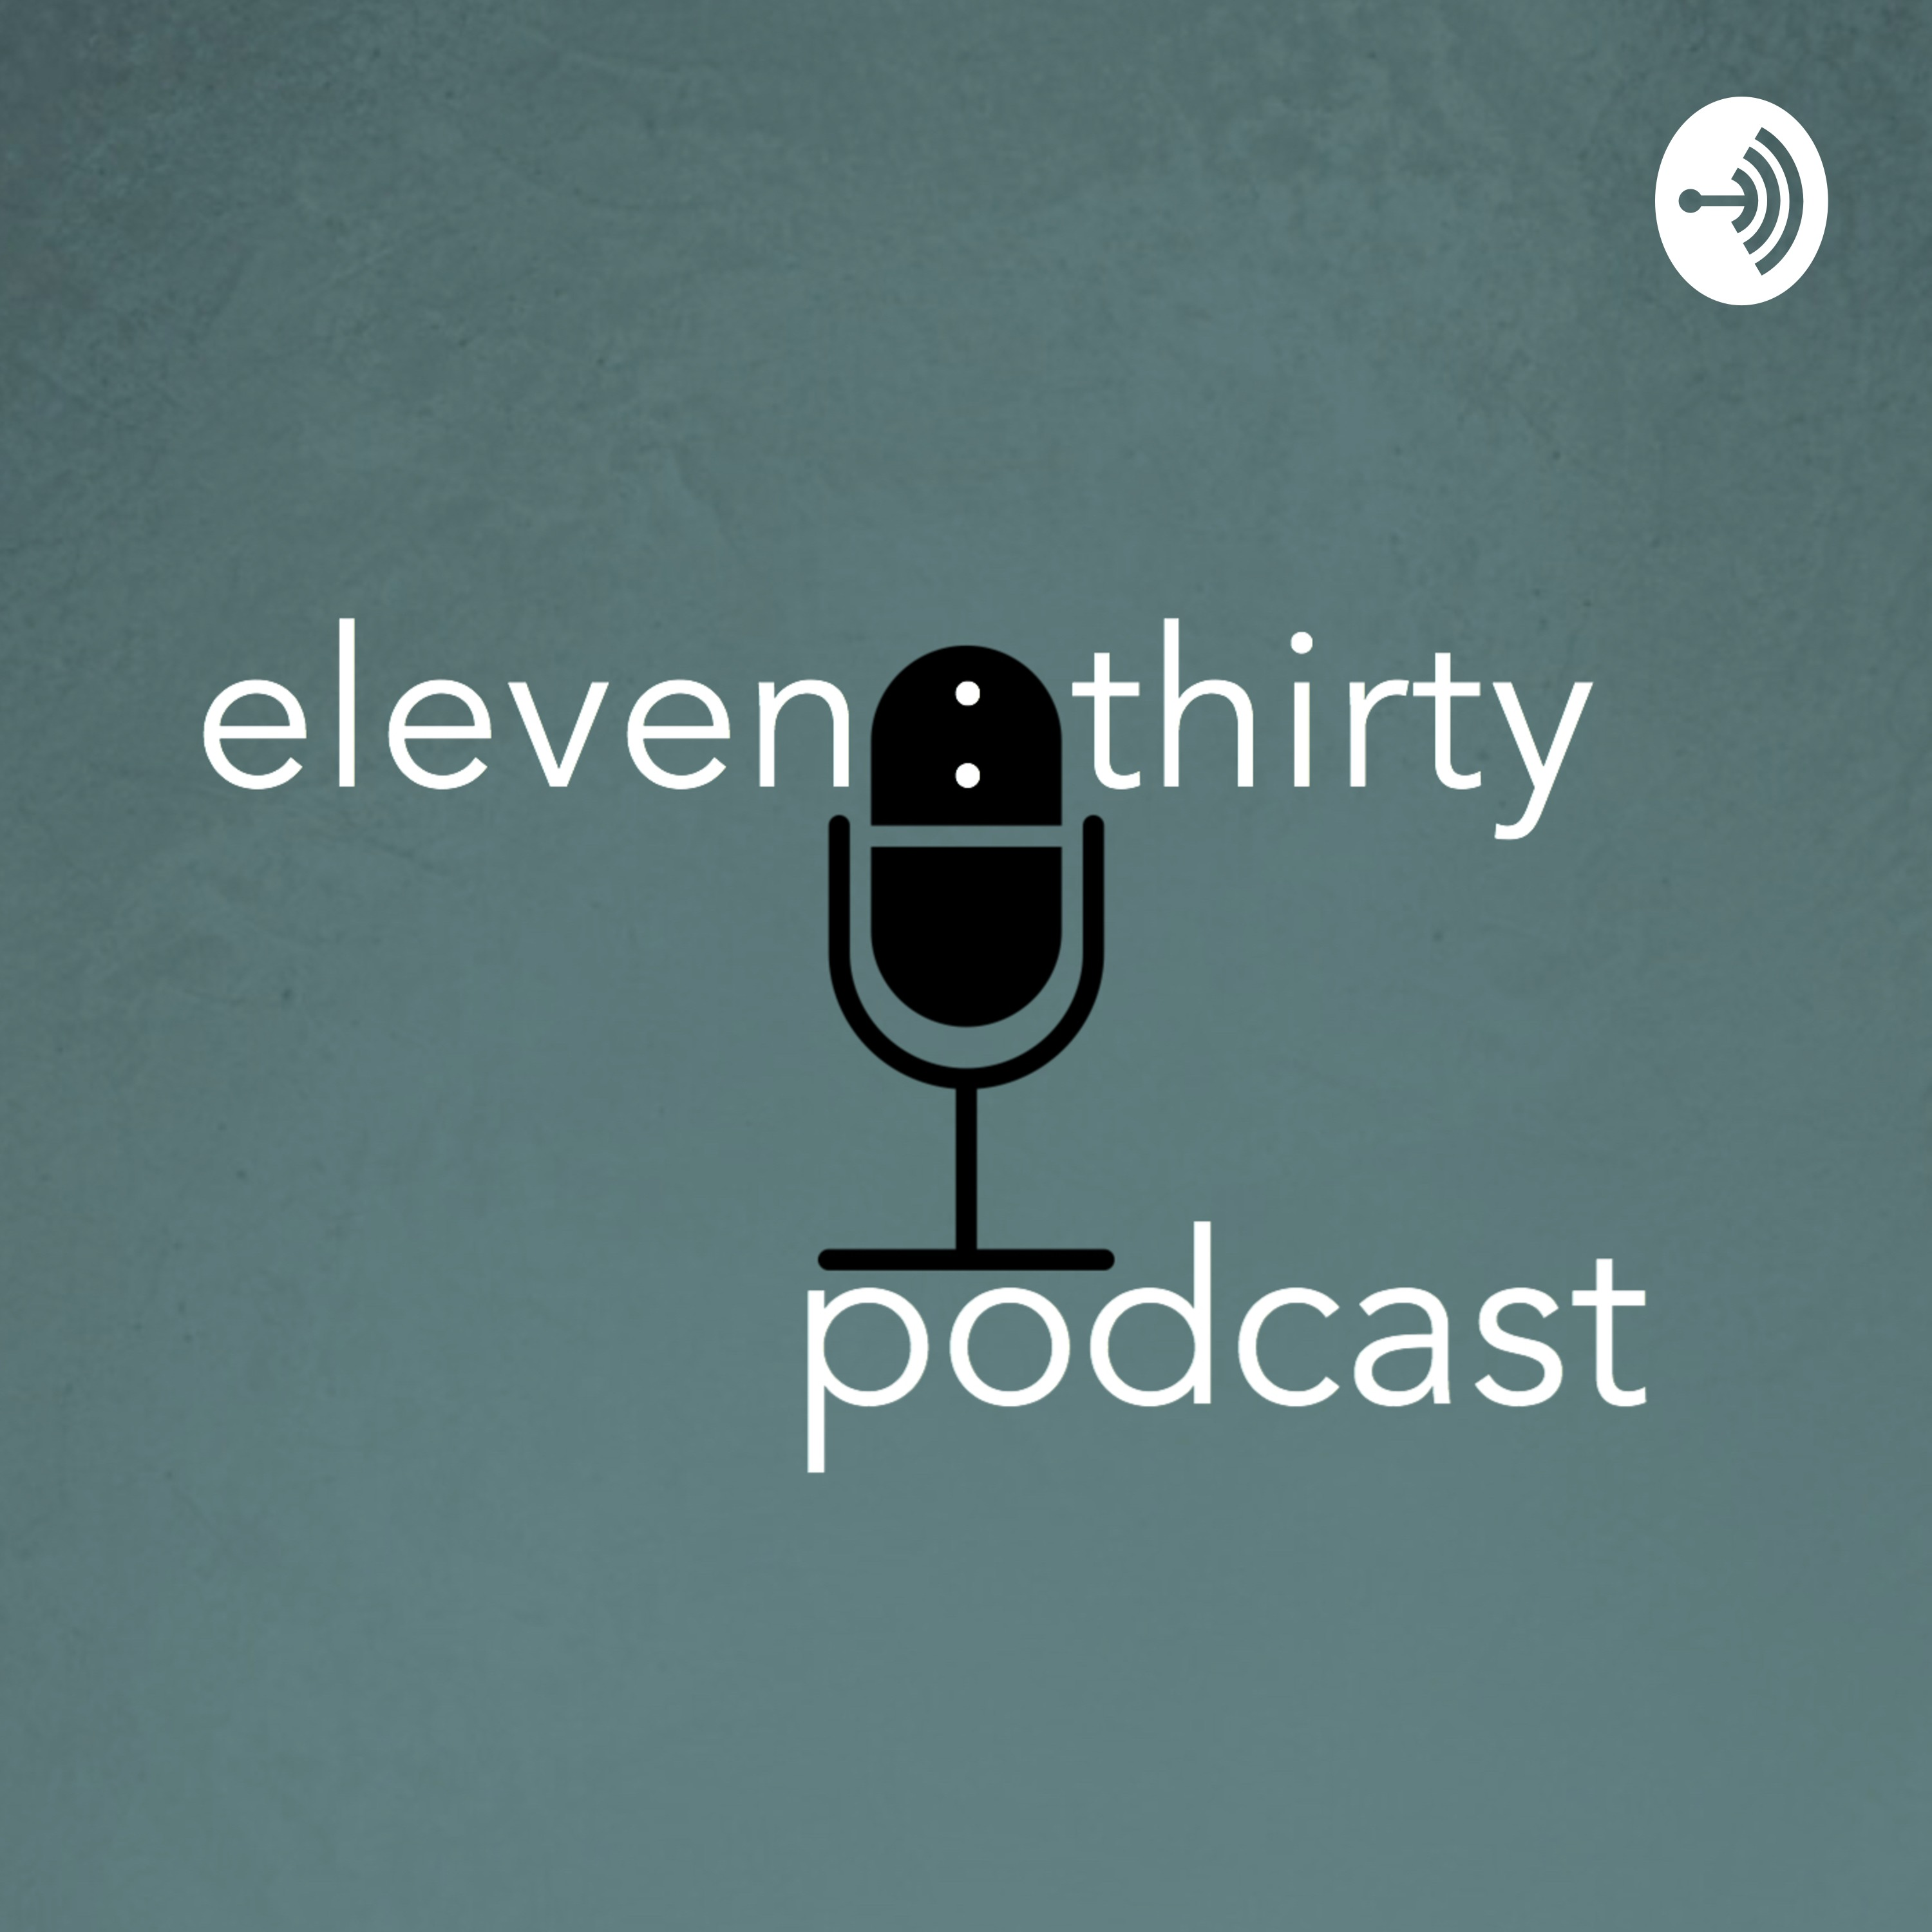 the eleven:thirty podcast | Listen via Stitcher for Podcasts